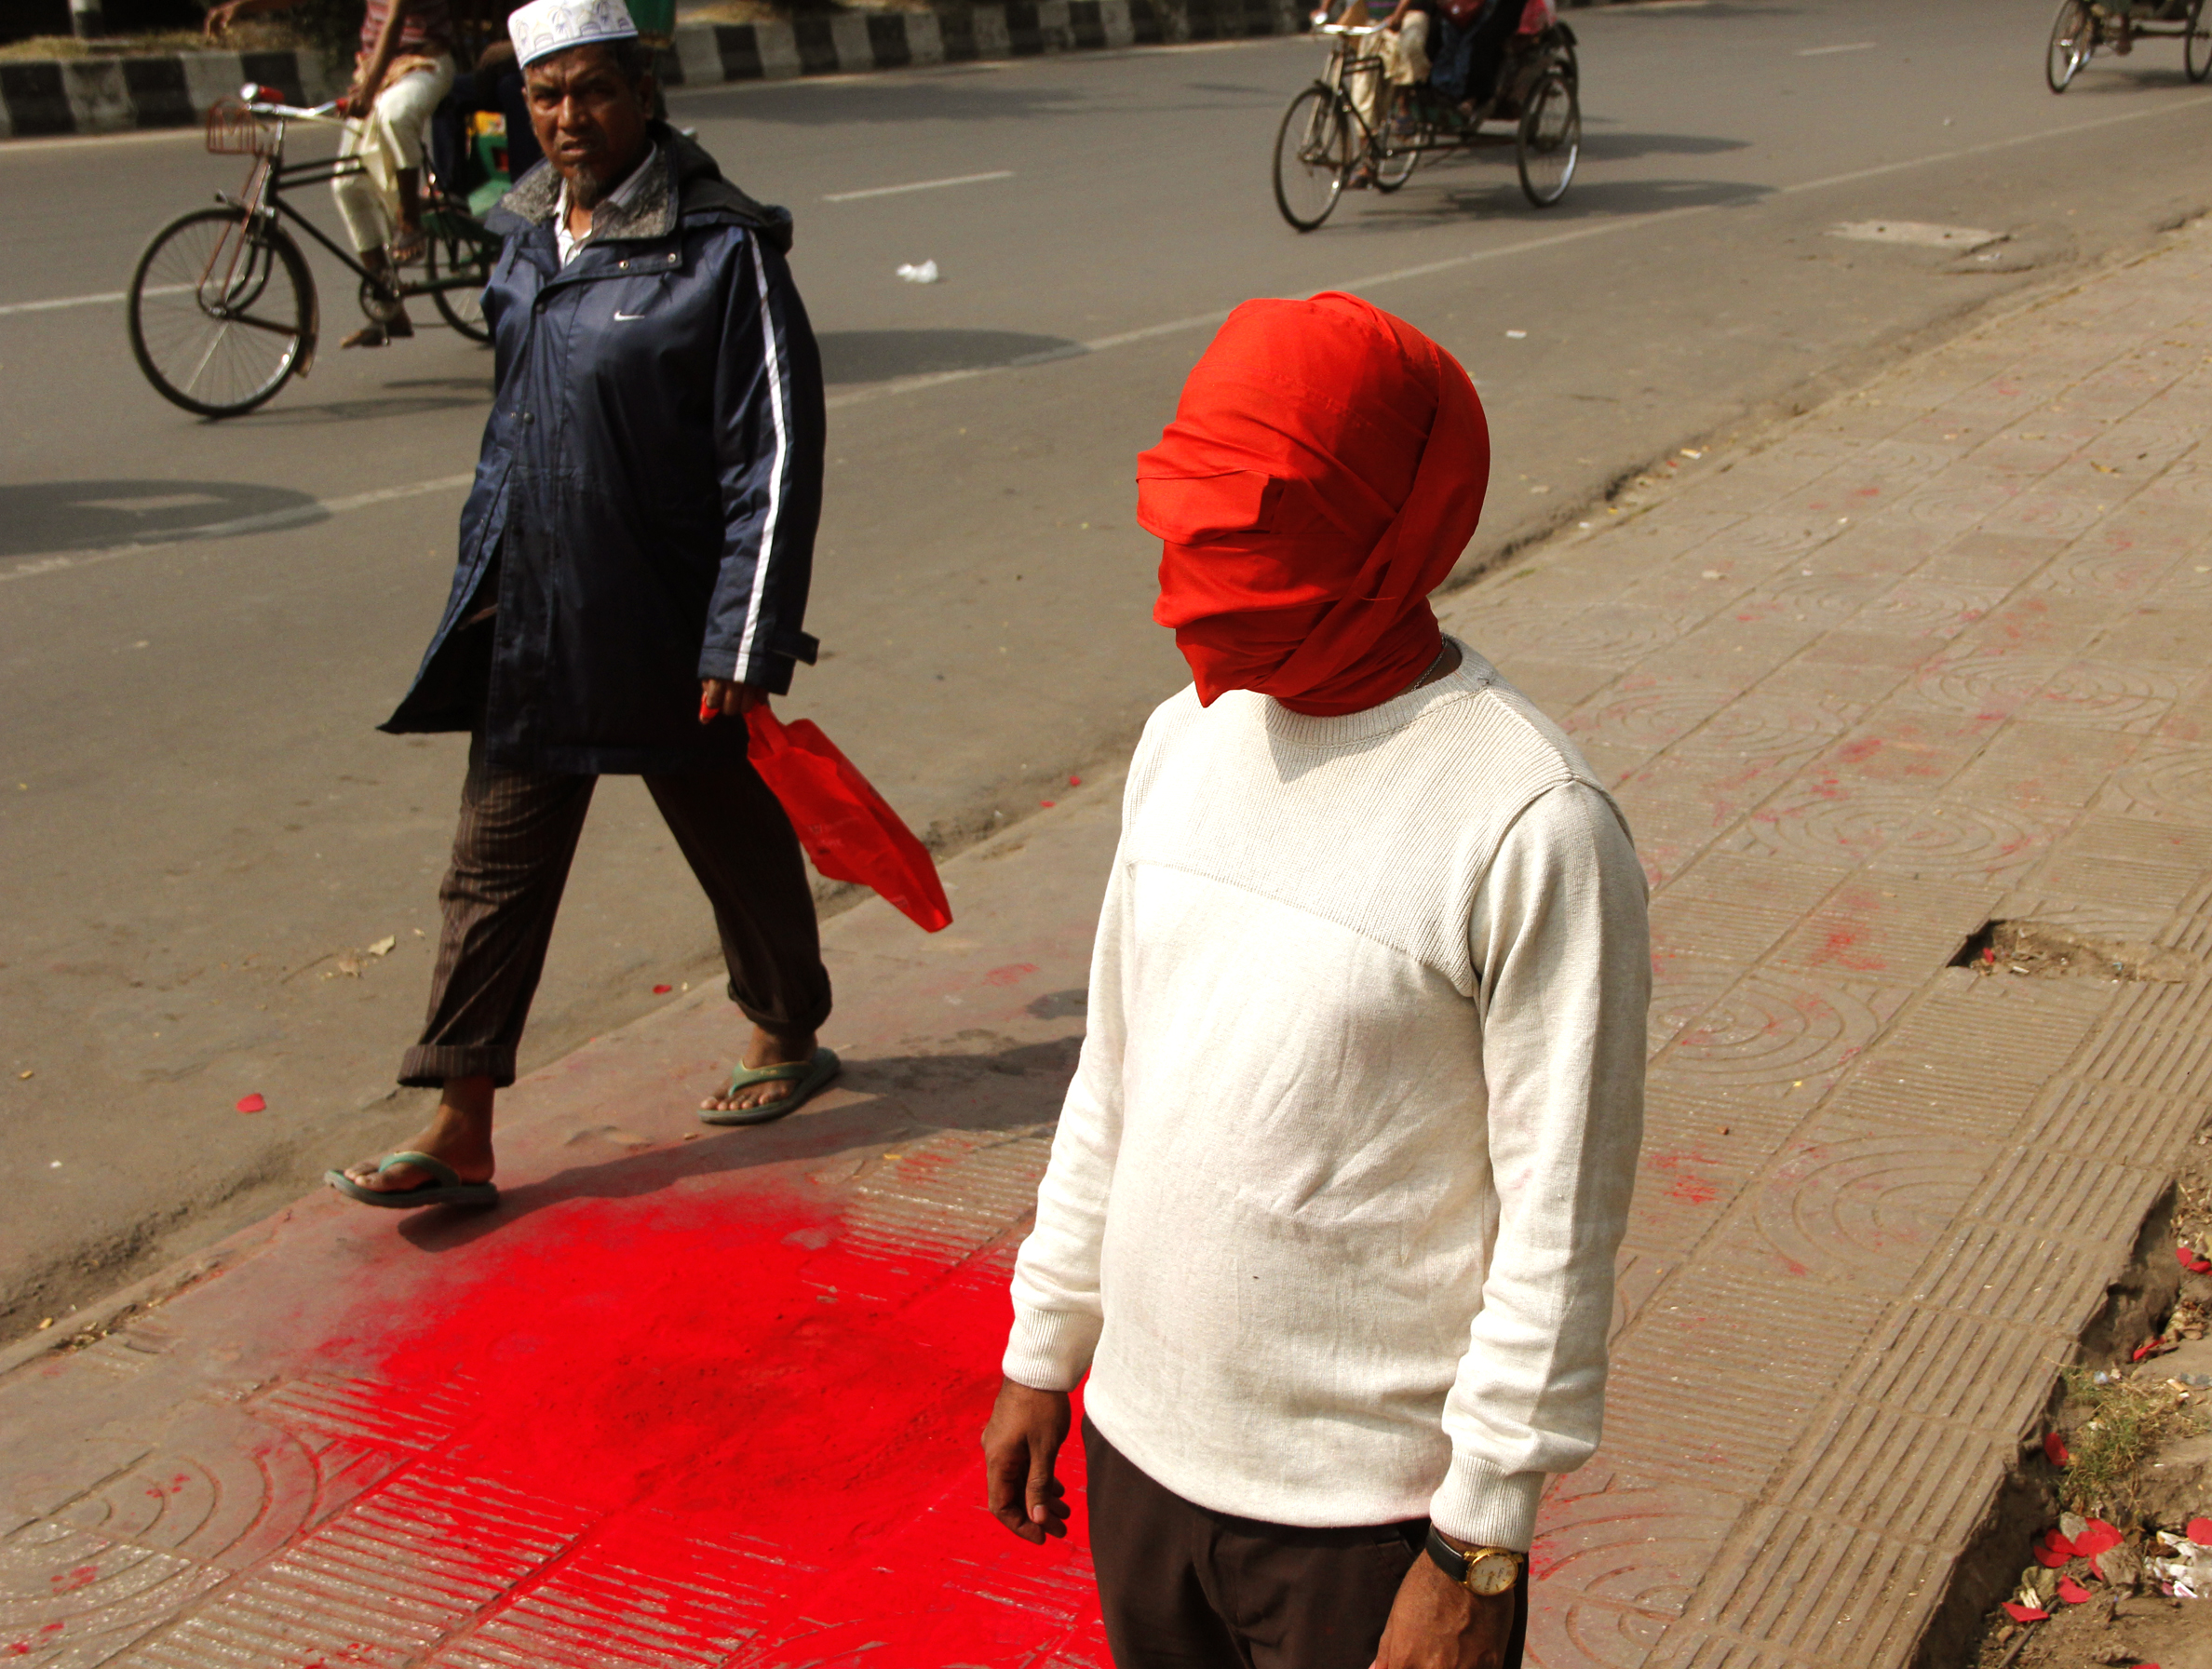 "Red Dot on a Red Road  (2017), still from live performance as part of D'LAB (Dhaka Live Art Biennale) at Dhaka University Campus.  Courtesy of the artist. Photo credit: Imtiaz-al-Tareq.           Normal     0                     false     false     false         EN-GB     X-NONE     HI                                                                                                                                                                                                                                                                                                                                                                                                                                                                                                                                                                                                                                                                                                                                                                                                                                                                                                                                                                                                                                                                                                                                                                                                                                                                                                                                                                                                                                                                                                                                                                                                                                                                                                     /* Style Definitions */  table.MsoNormalTable 	{mso-style-name:""Table Normal""; 	mso-tstyle-rowband-size:0; 	mso-tstyle-colband-size:0; 	mso-style-noshow:yes; 	mso-style-priority:99; 	mso-style-parent:""""; 	mso-padding-alt:0in 5.4pt 0in 5.4pt; 	mso-para-margin-top:0in; 	mso-para-margin-right:0in; 	mso-para-margin-bottom:10.0pt; 	mso-para-margin-left:0in; 	line-height:115%; 	mso-pagination:widow-orphan; 	font-size:11.0pt; 	mso-bidi-font-size:10.0pt; 	font-family:""Calibri"",sans-serif; 	mso-ascii-font-family:Calibri; 	mso-ascii-theme-font:minor-latin; 	mso-hansi-font-family:Calibri; 	mso-hansi-theme-font:minor-latin; 	mso-bidi-font-family:Mangal; 	mso-bidi-theme-font:minor-bidi; 	mso-fareast-language:EN-US; 	mso-bidi-language:HI;}"